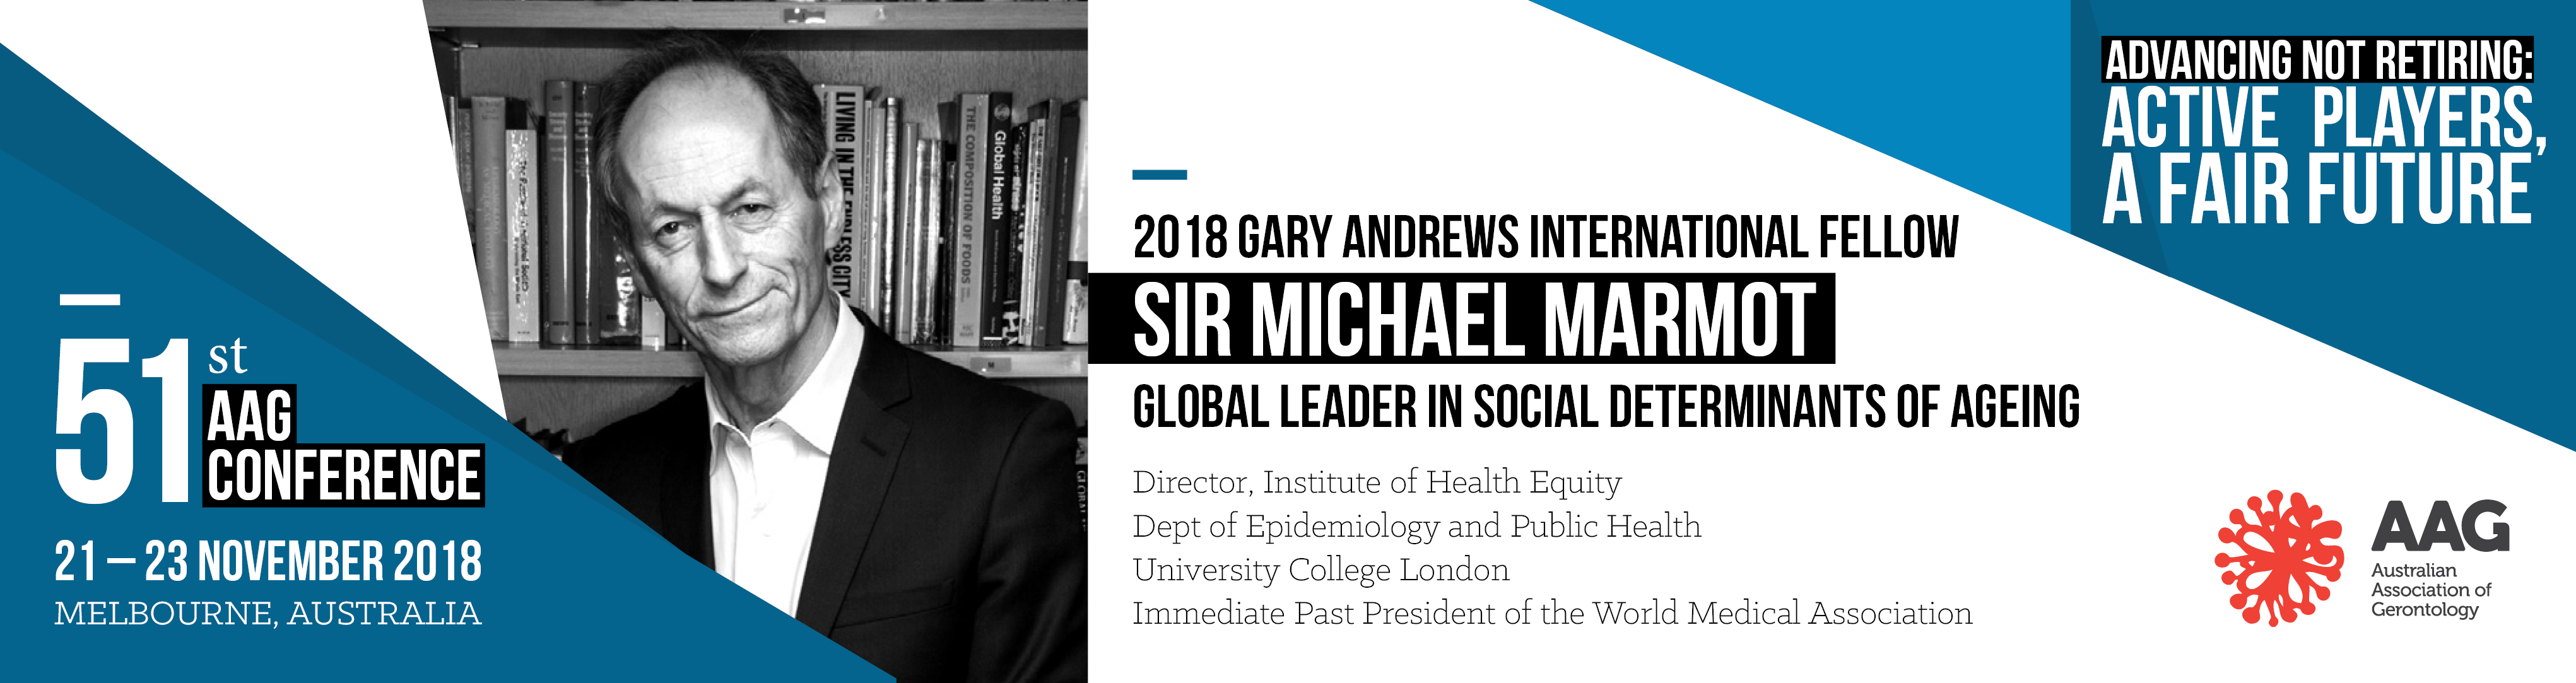 2018 Gary Andrews International Fellow